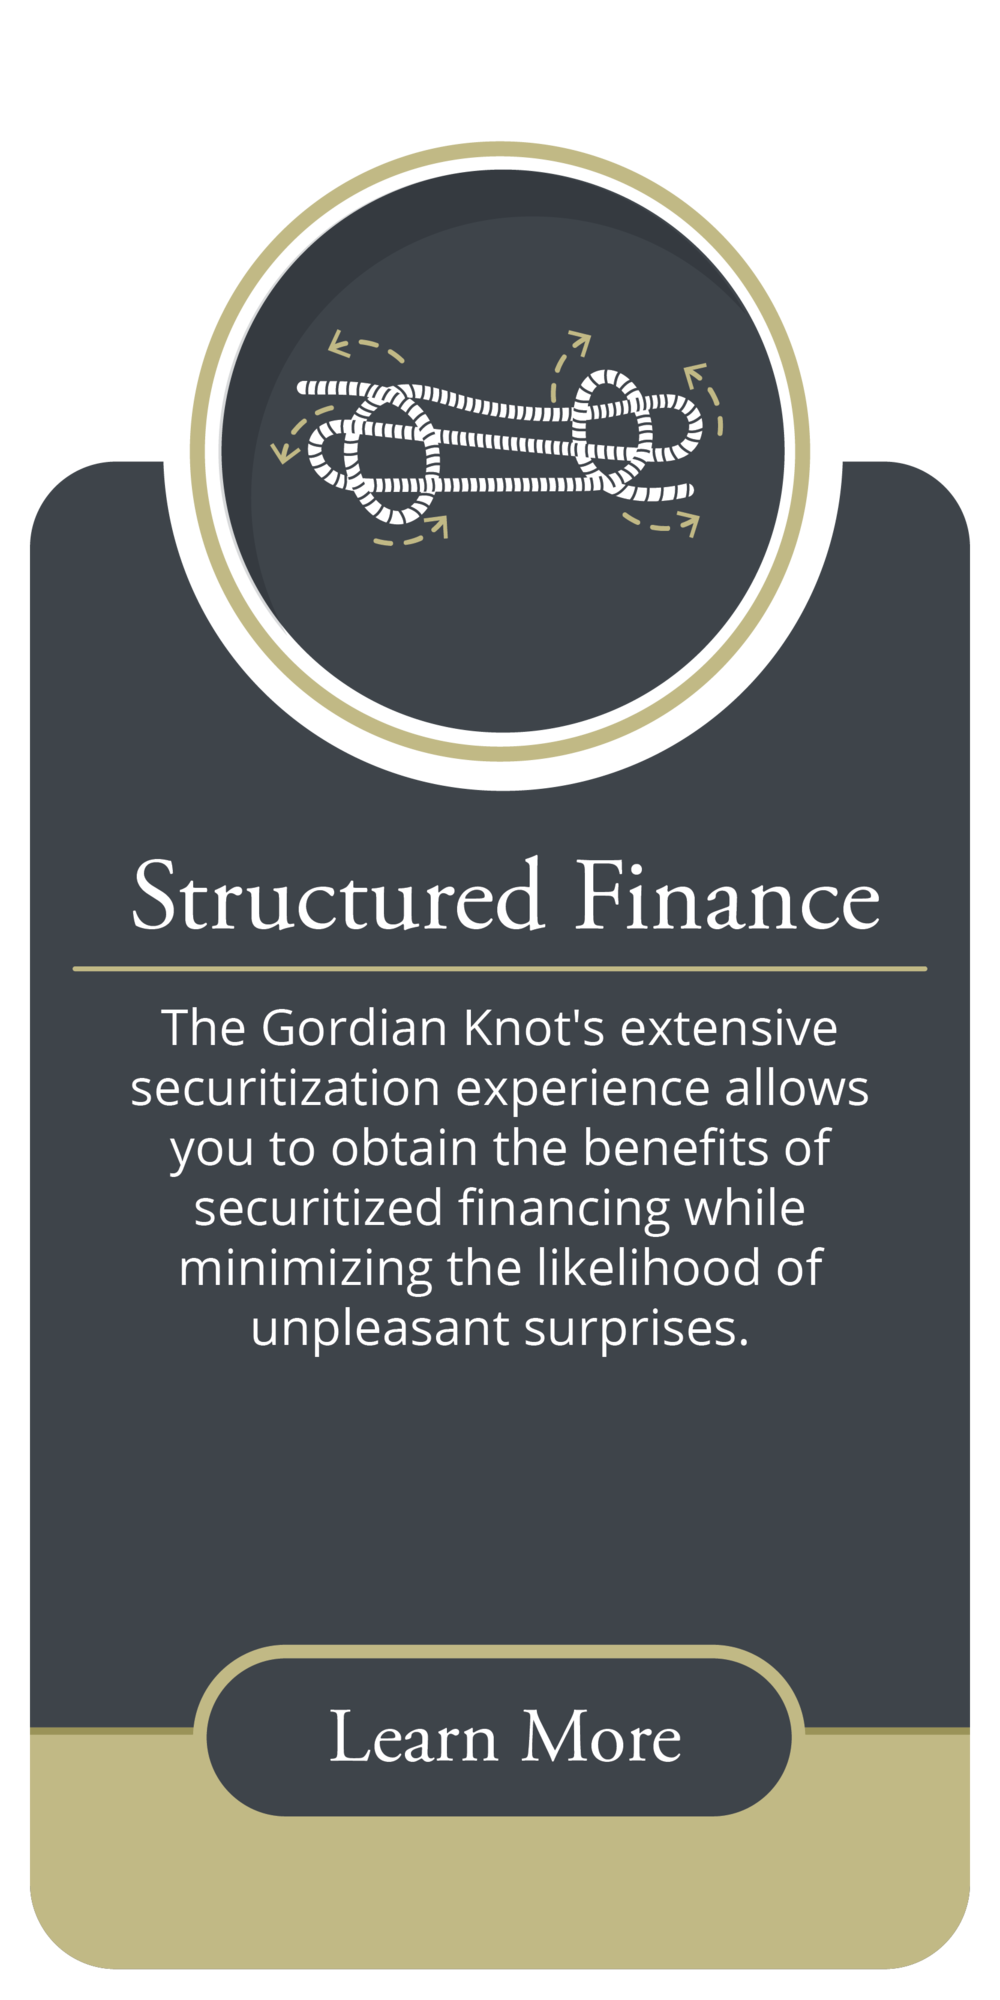 GordianKnot_service_structured_finance.png